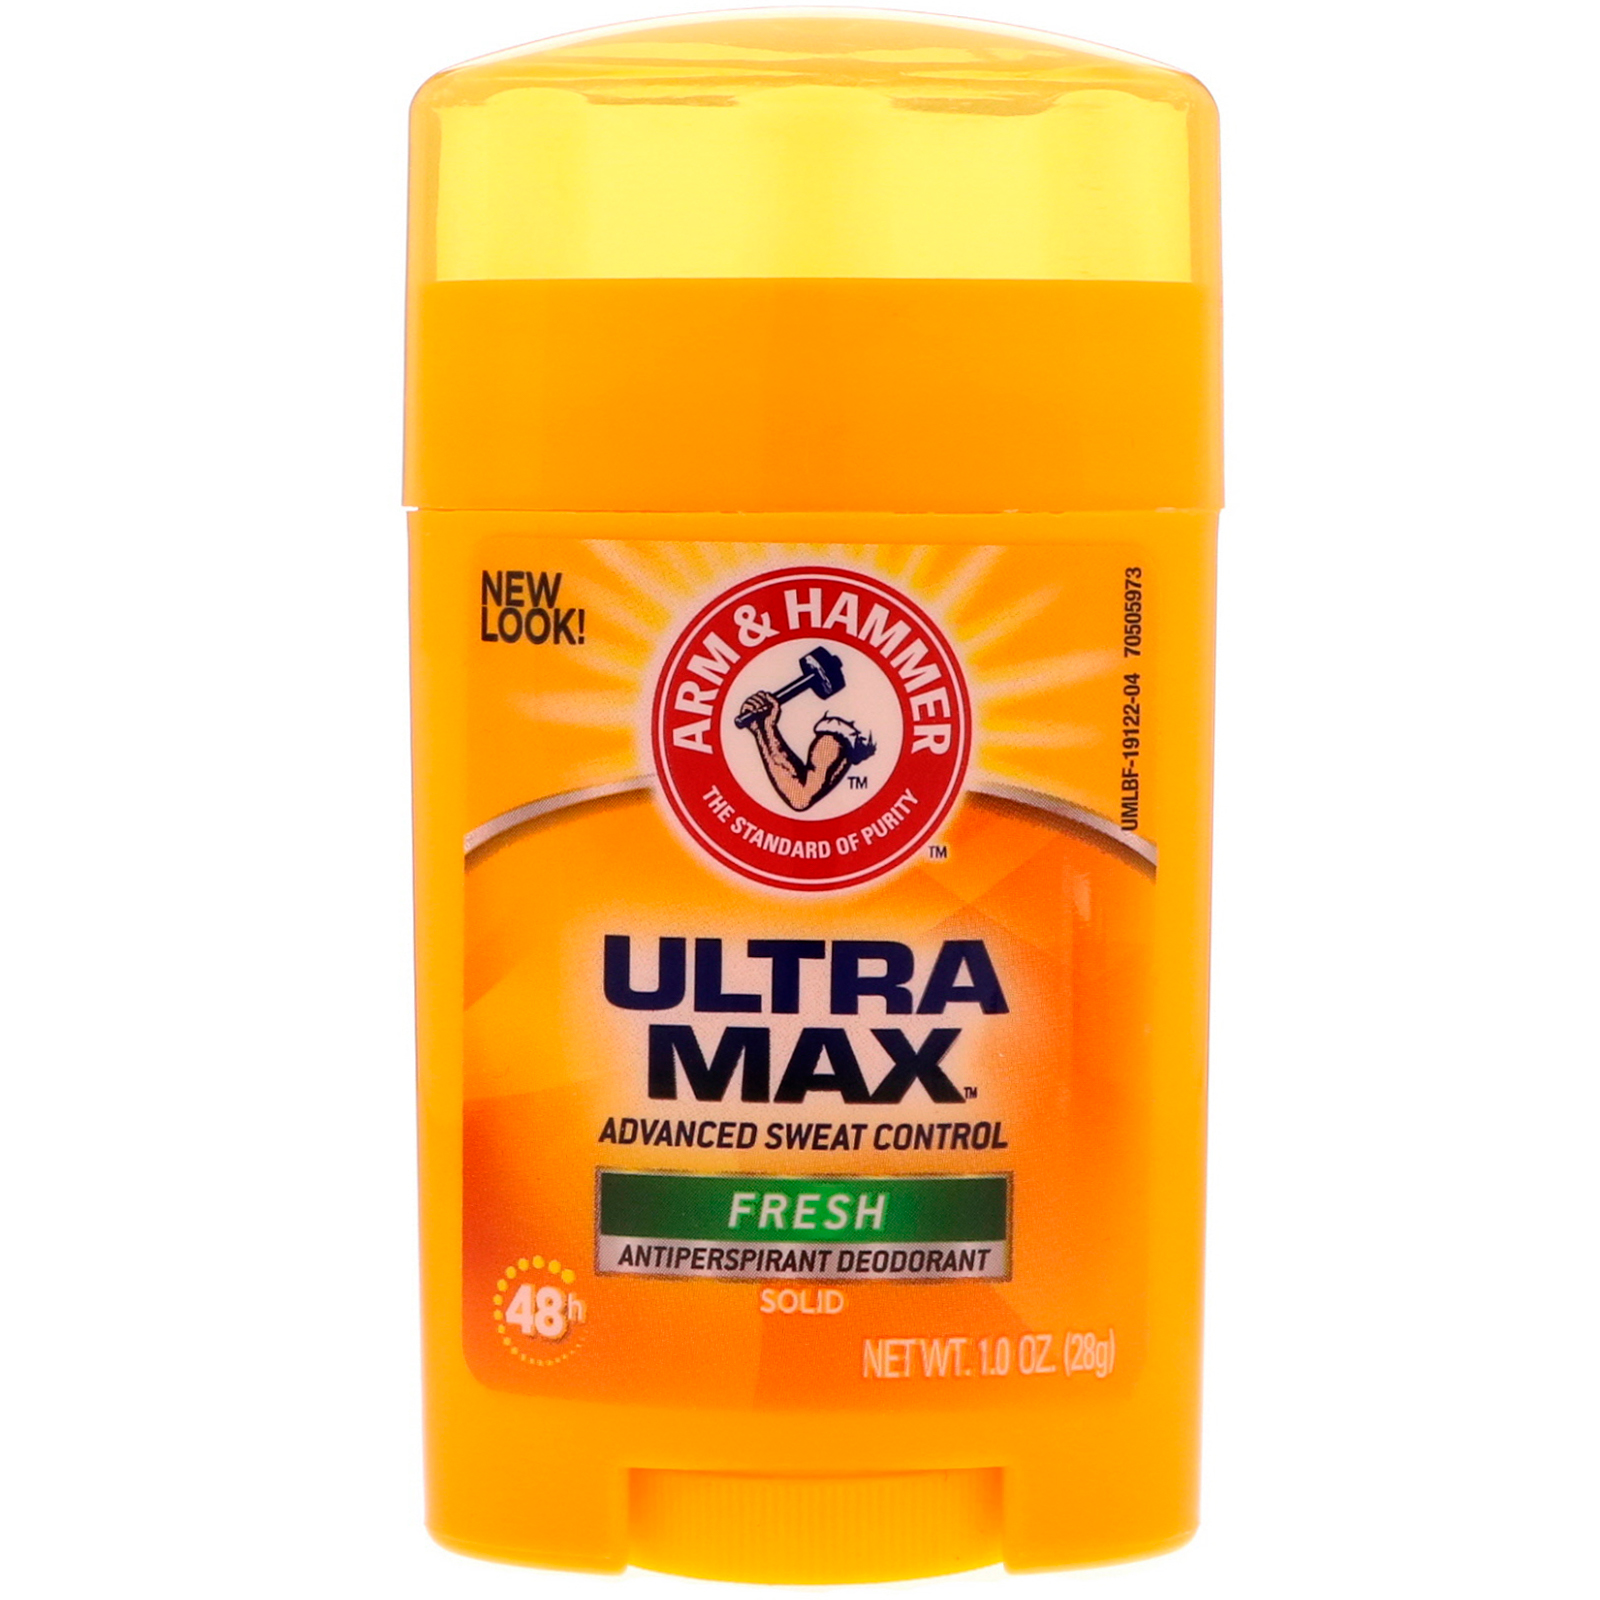 22155773d Arm & Hammer, UltraMax، مزيل رائحة صلب مضاد للعرق، منعش، 1.0 أونصة ...